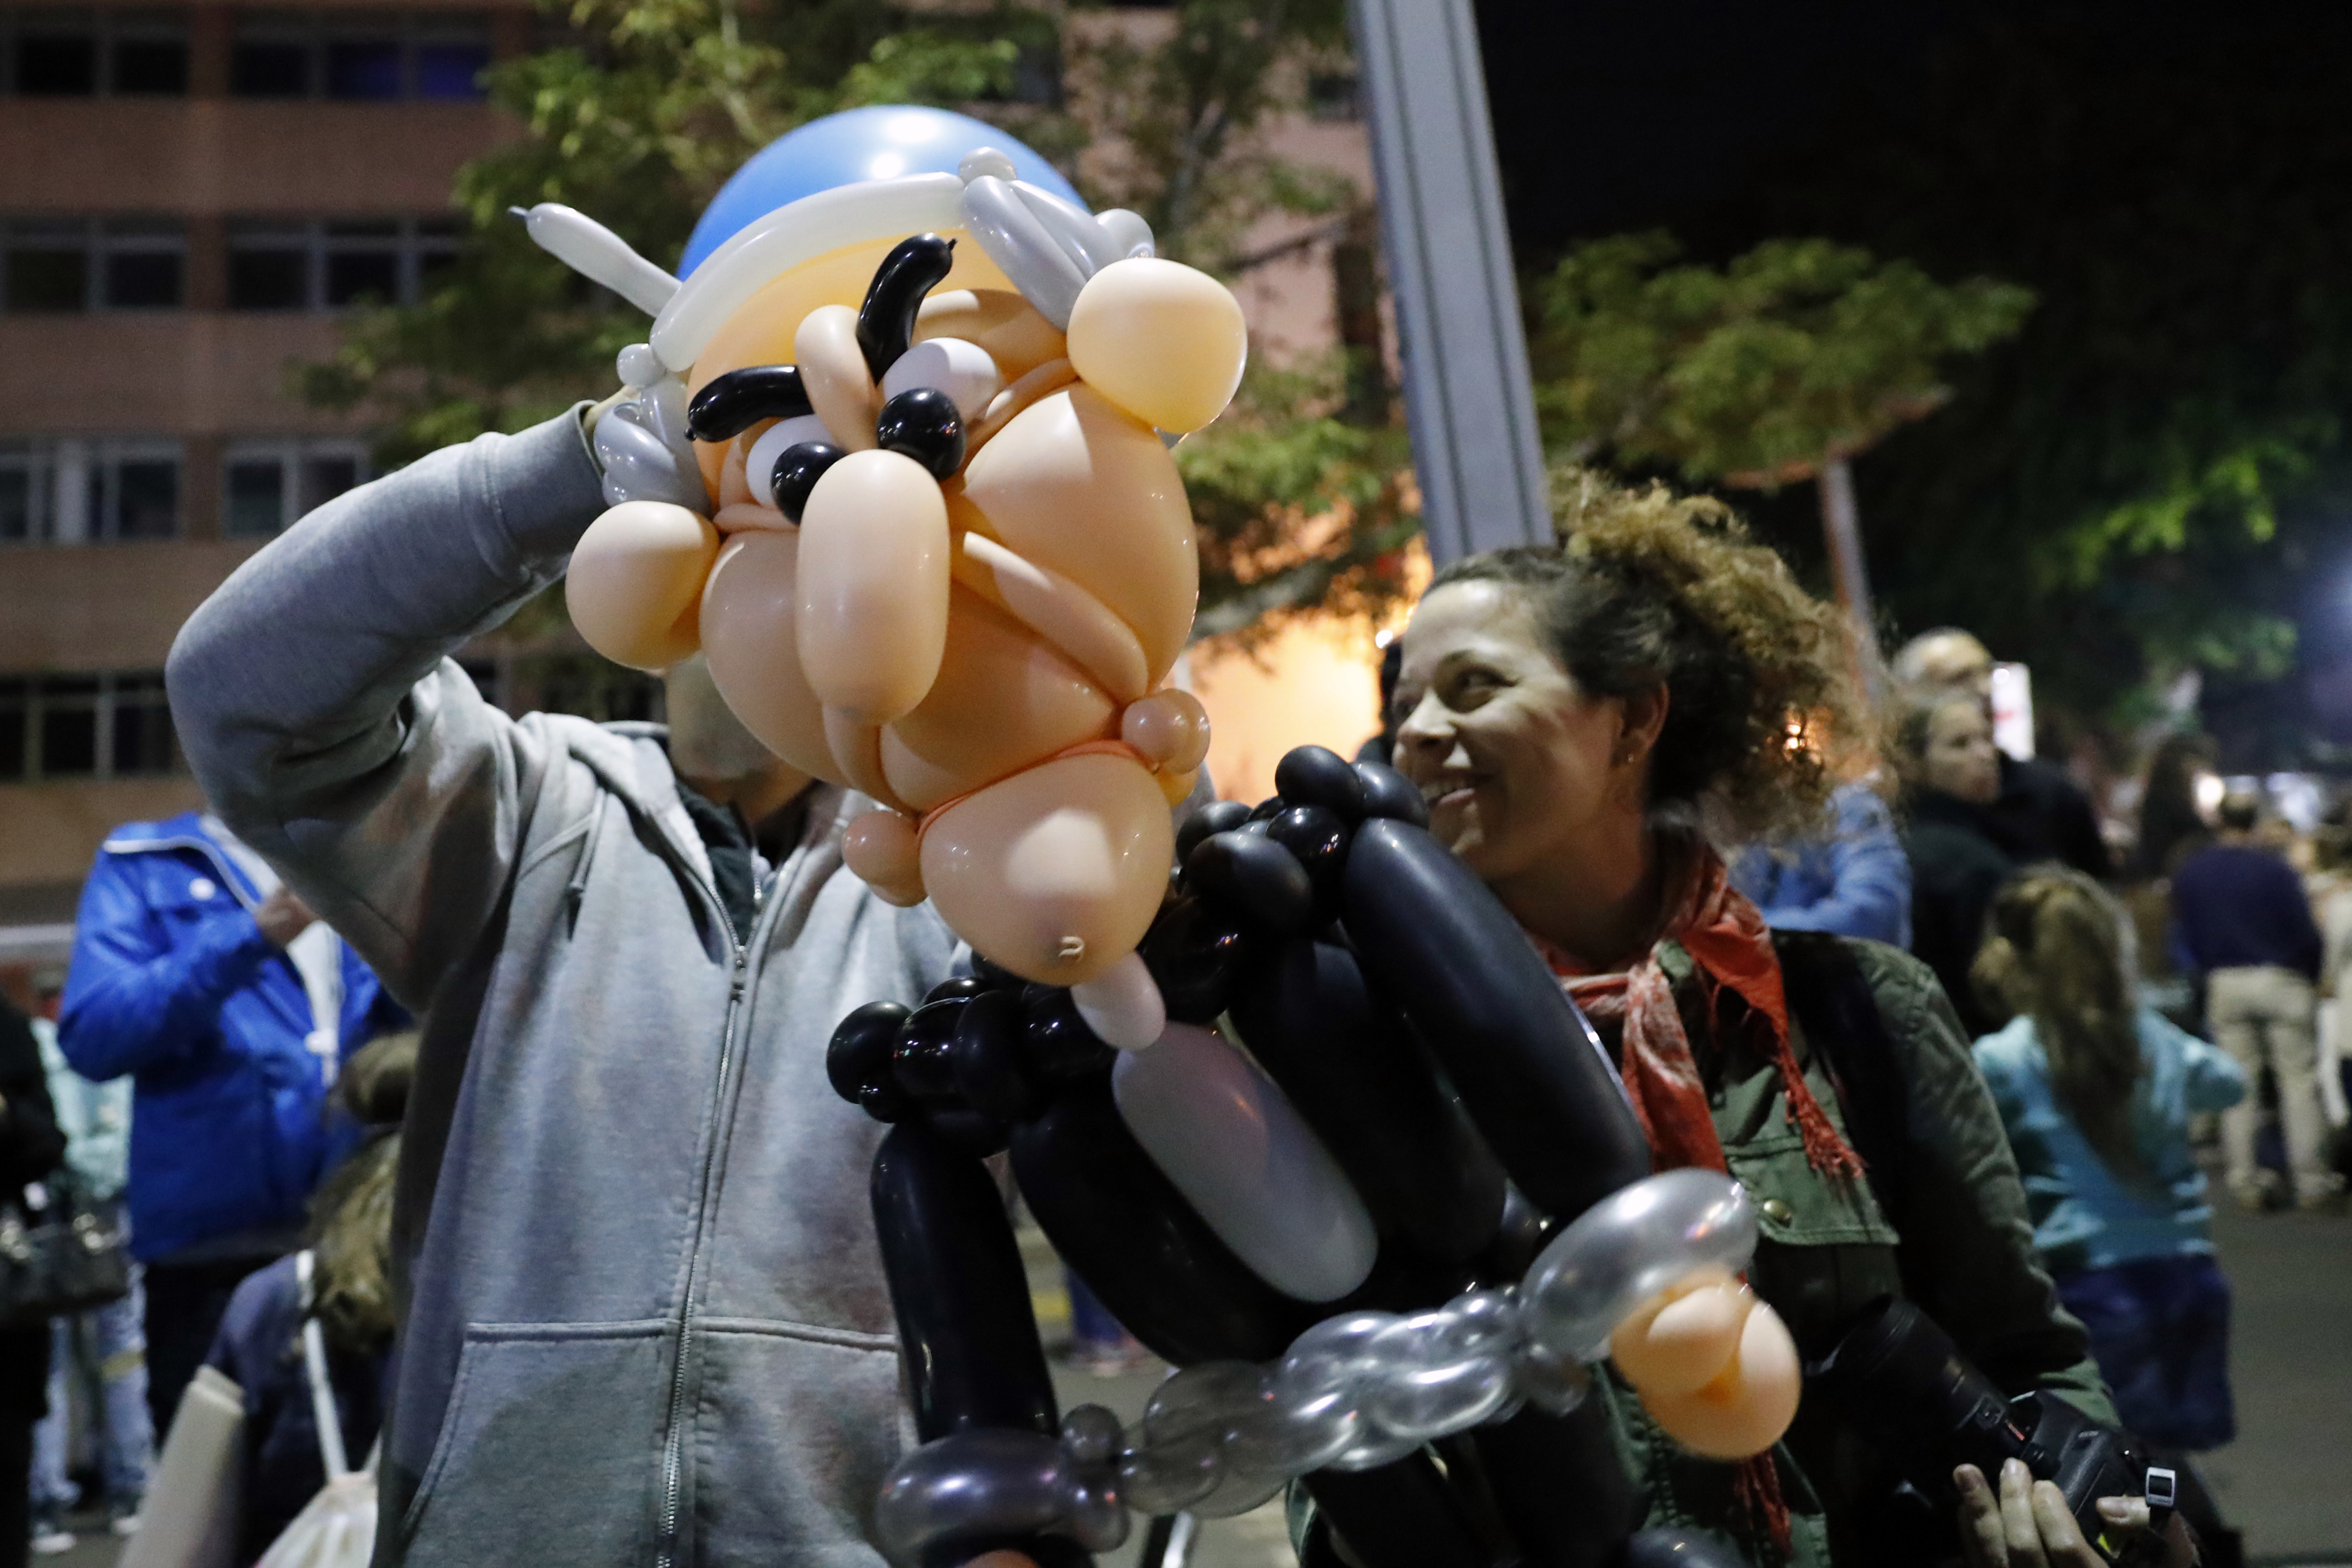 A protestor with a Benjamin Netanyahu balloon at an anti-corruption protest in Tel Aviv, December 9, 2017 (AFP Photo))